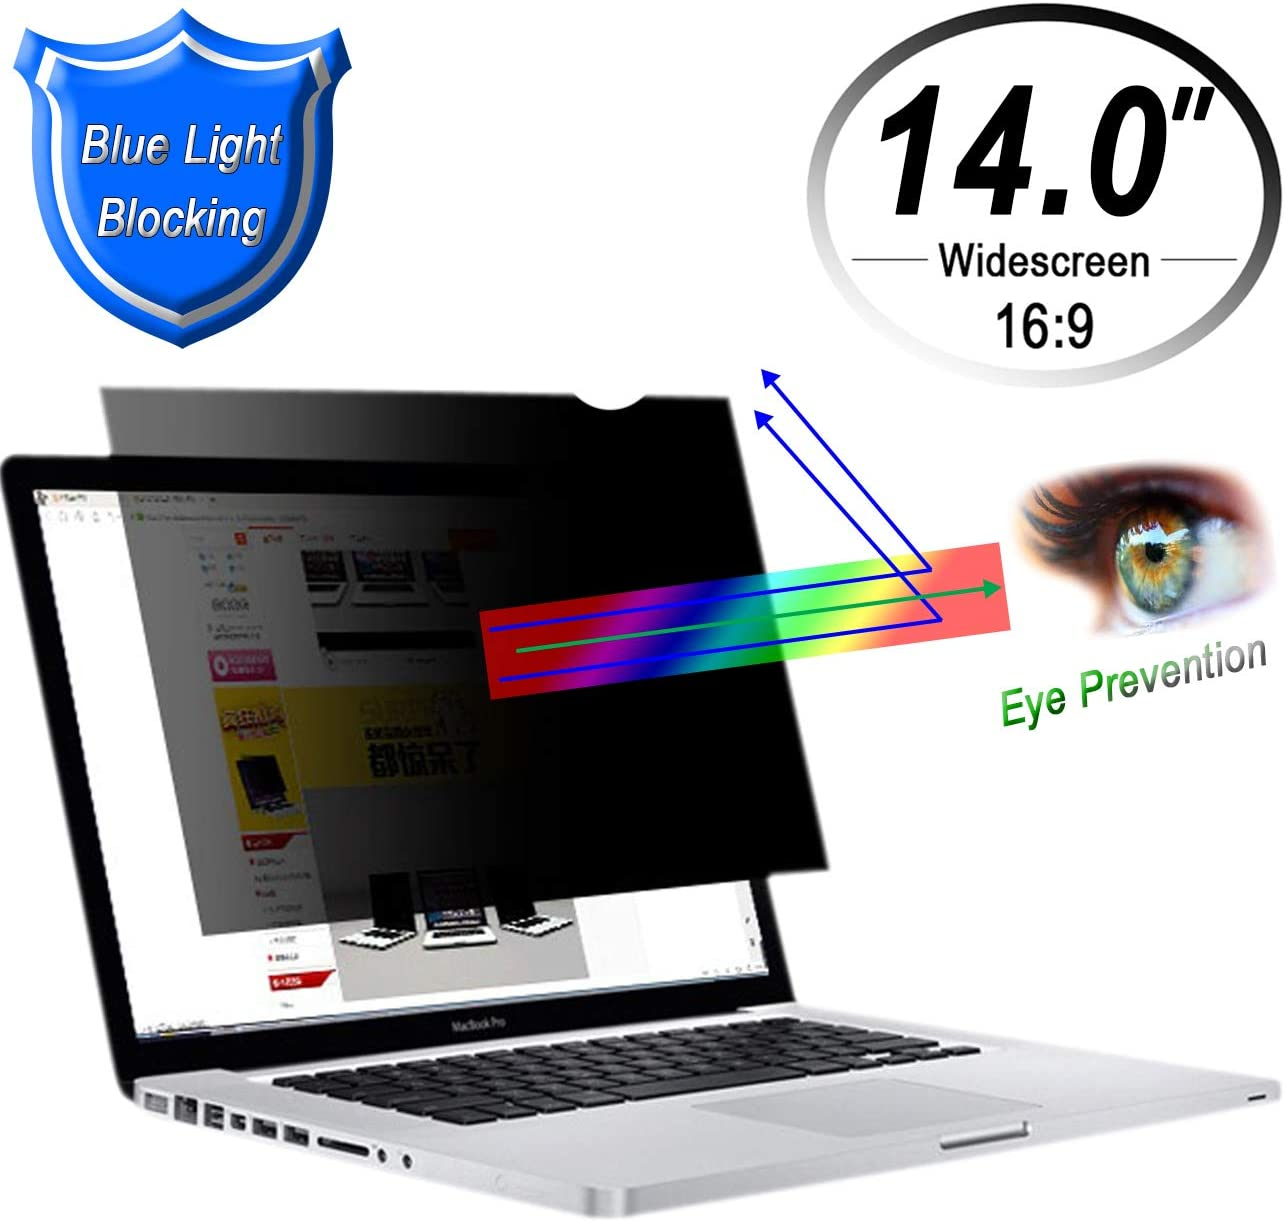 CenterZ 14.0 inch Laptop Privacy Filter, Blue Light Blocking 16:9 Widescreen Removable Reusable Antiglare 60° Visible Angle Notebook Screen Protector Film for HP Lenovo Surface Macbook Dell (Blackout)